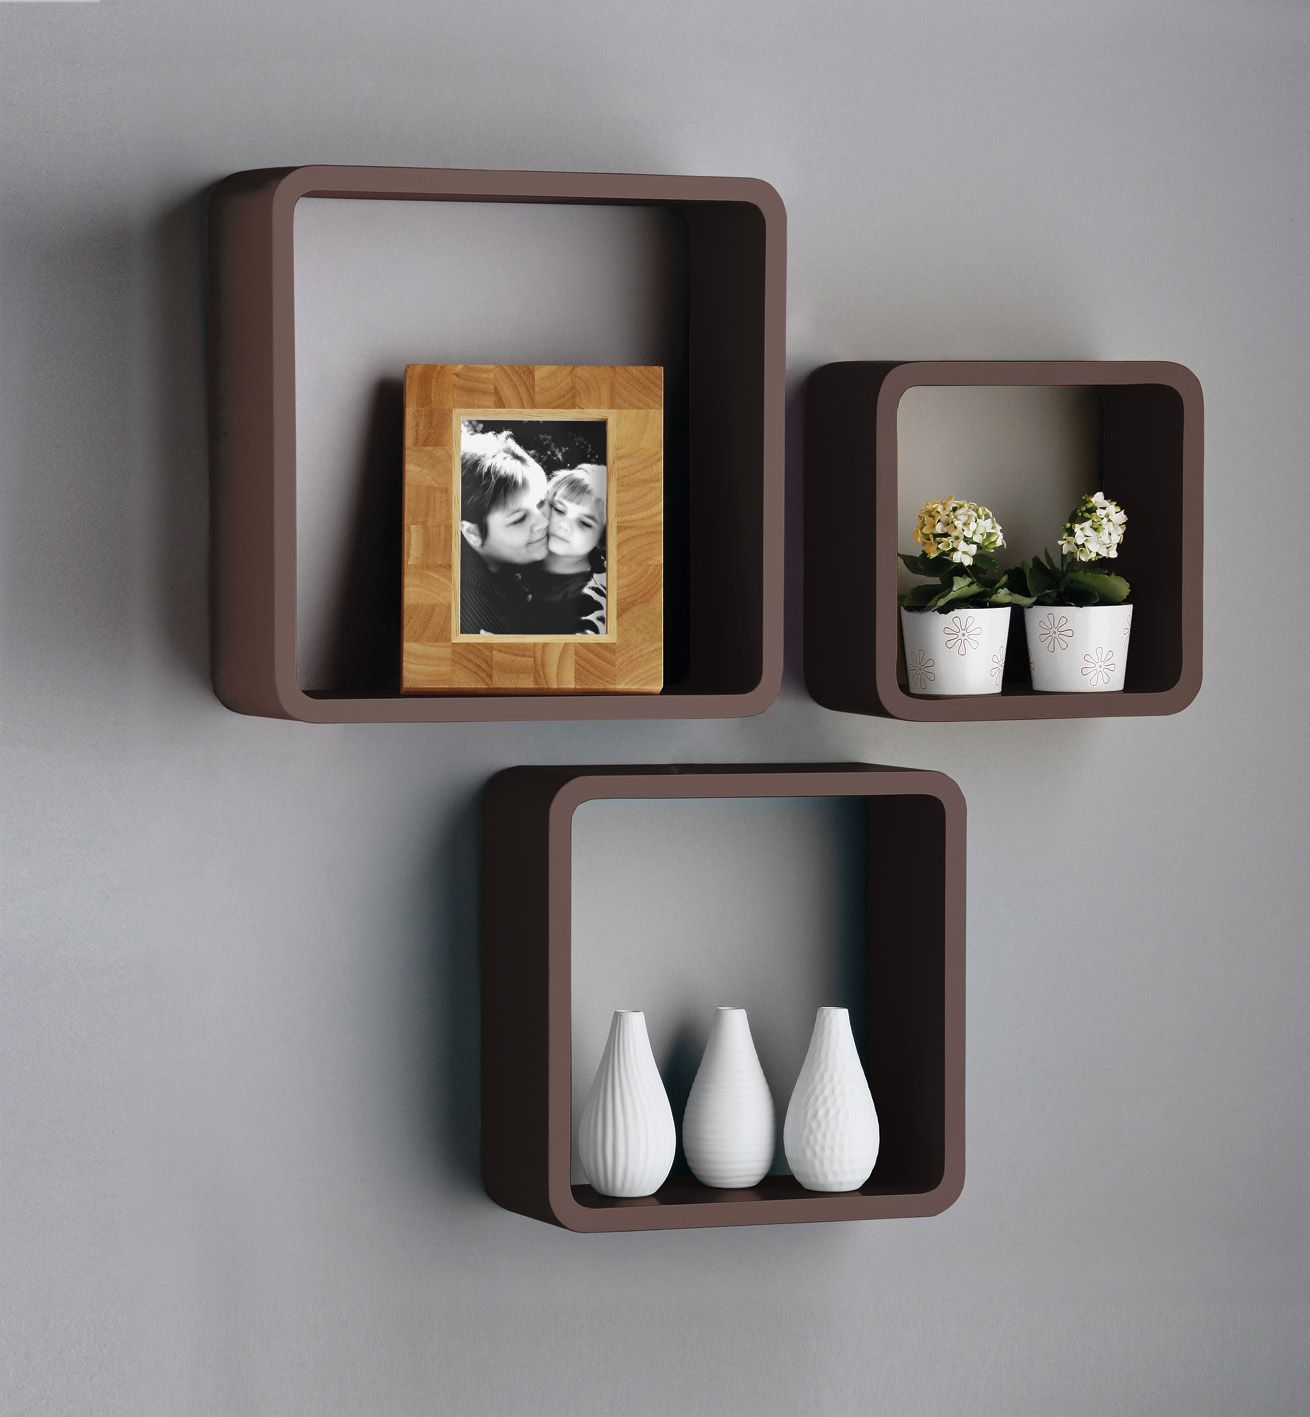 Melannco Floating Shelves Impressive Square Box Floating Shelf  Home Decor  Pinterest  Shelves Inspiration